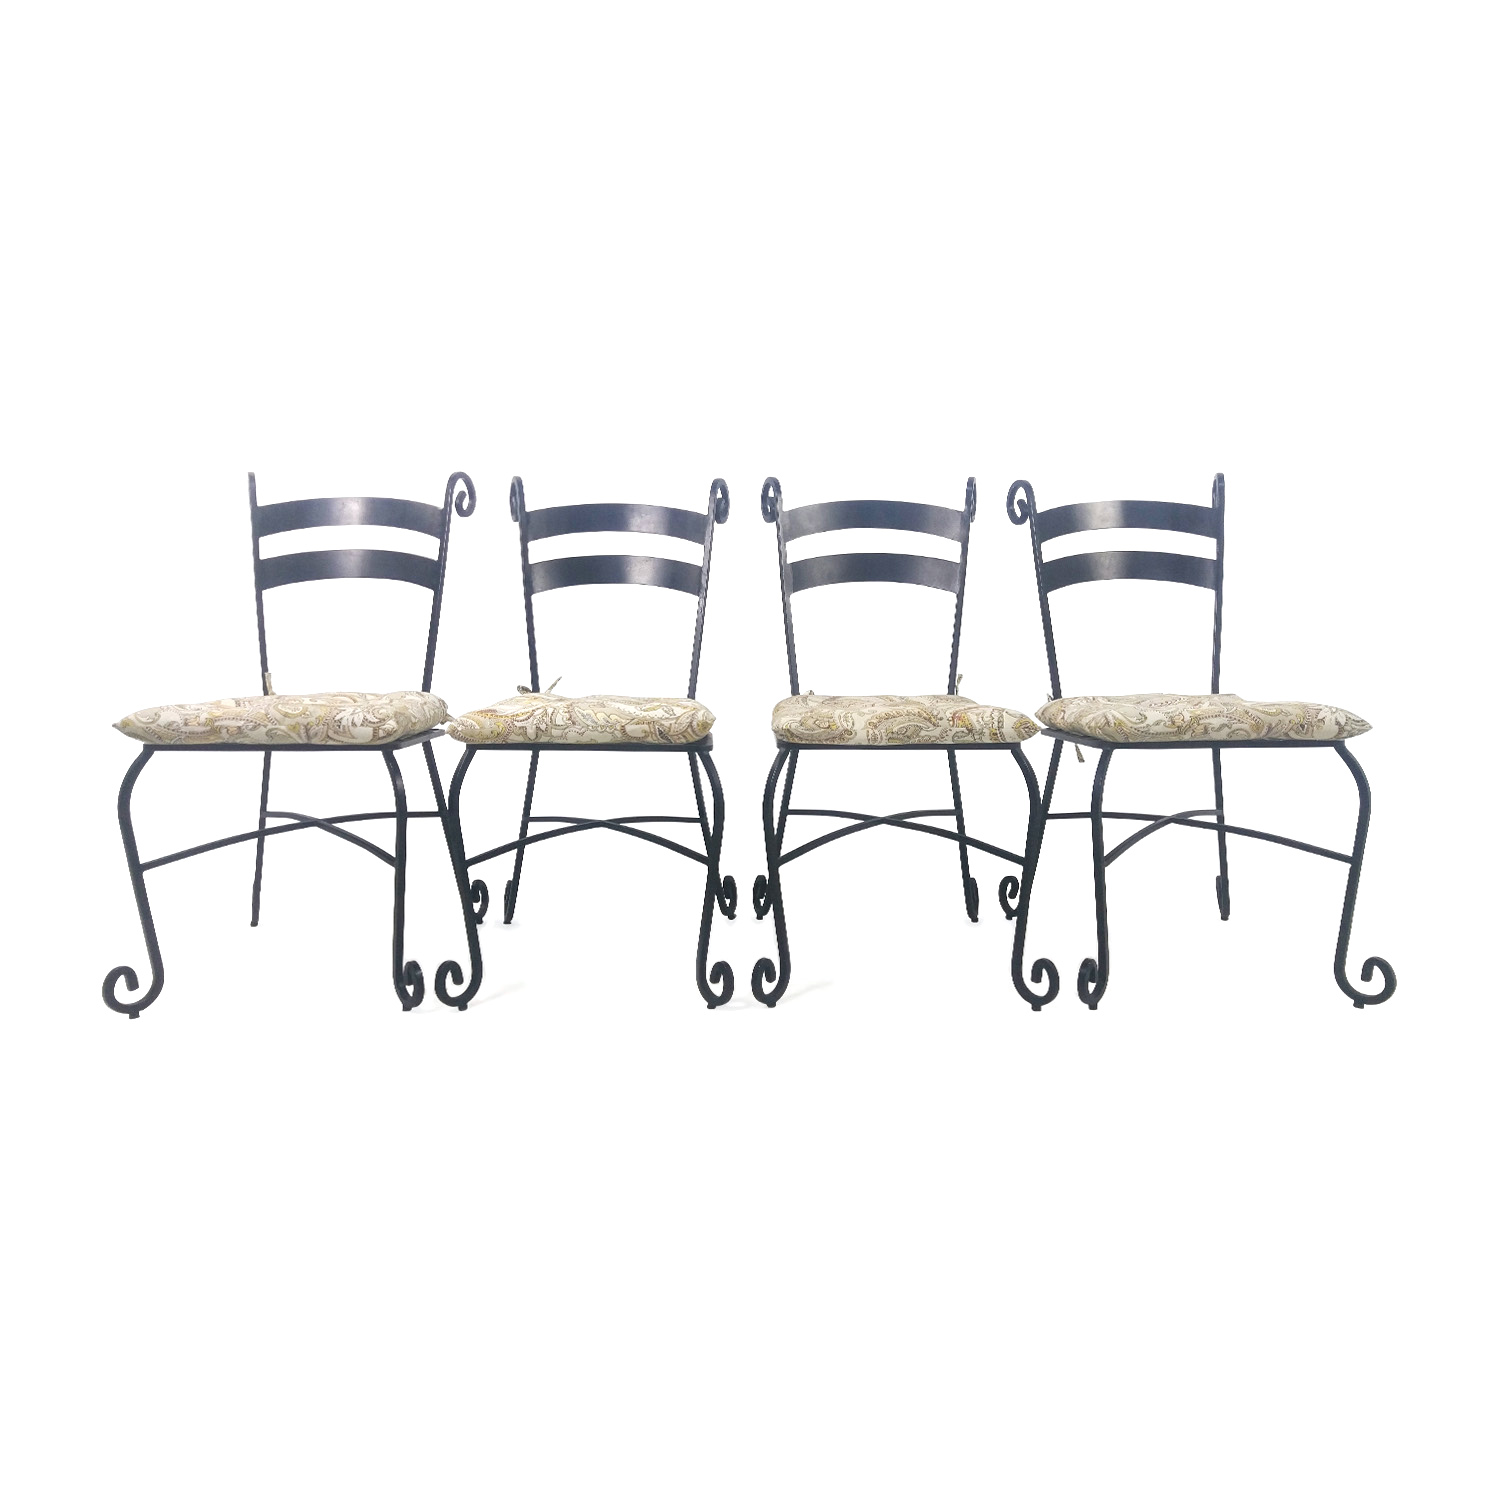 Iron Outdoor Chairs Set of 4 nyc